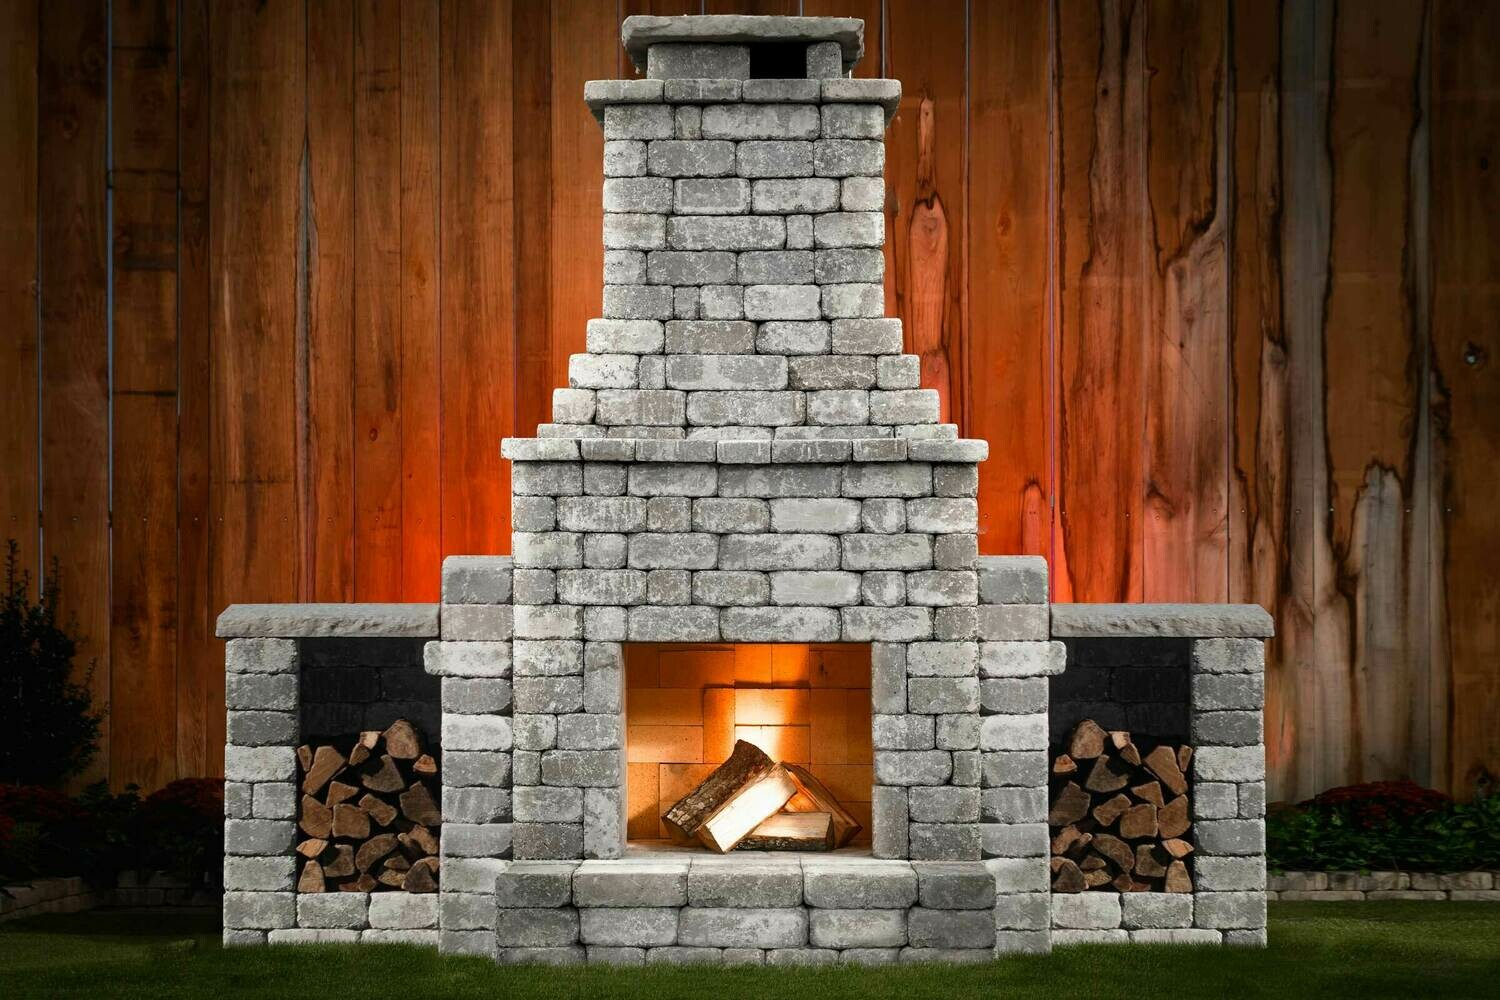 Princeton DIY Outdoor Fireplace Kit